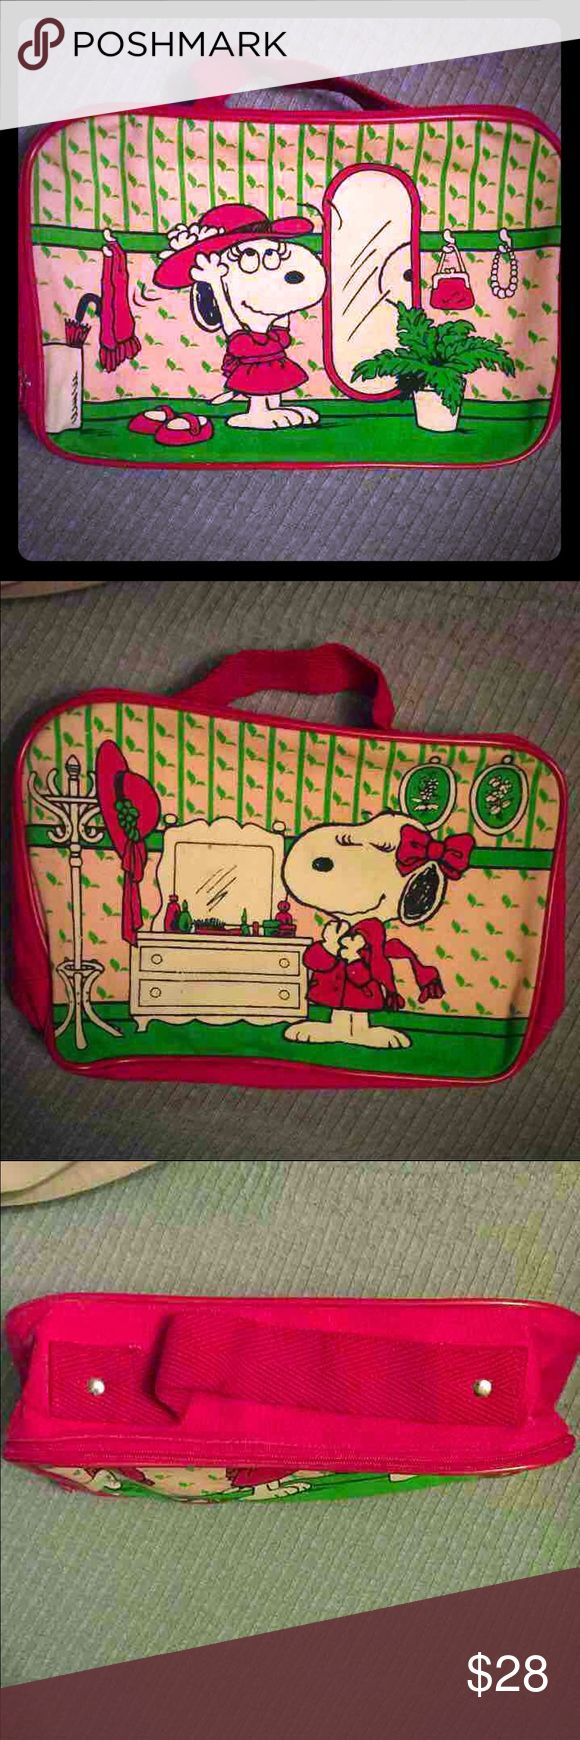 "Extremely Rare Vintage Snoopy's Sister Belle Bag Extremely Rare and in Excellent Condition, - CLEAN - 100% Cotton Canvas - 1958  2 Super Adorable Scenes of Snoopy's Sister. Train/makeup Case or use for anything your heart desires.  More Info:  Belle is a minor animal character in the comic strip Peanuts by Charles M. Schulz. ... Mistakenly thought by many that she was Snoopy's girlfriend, rather than his sister. Measurements:  Approx. 9"" wide, 7 3/4"" high, 6"" depth  Handle drop: approx 3""…"